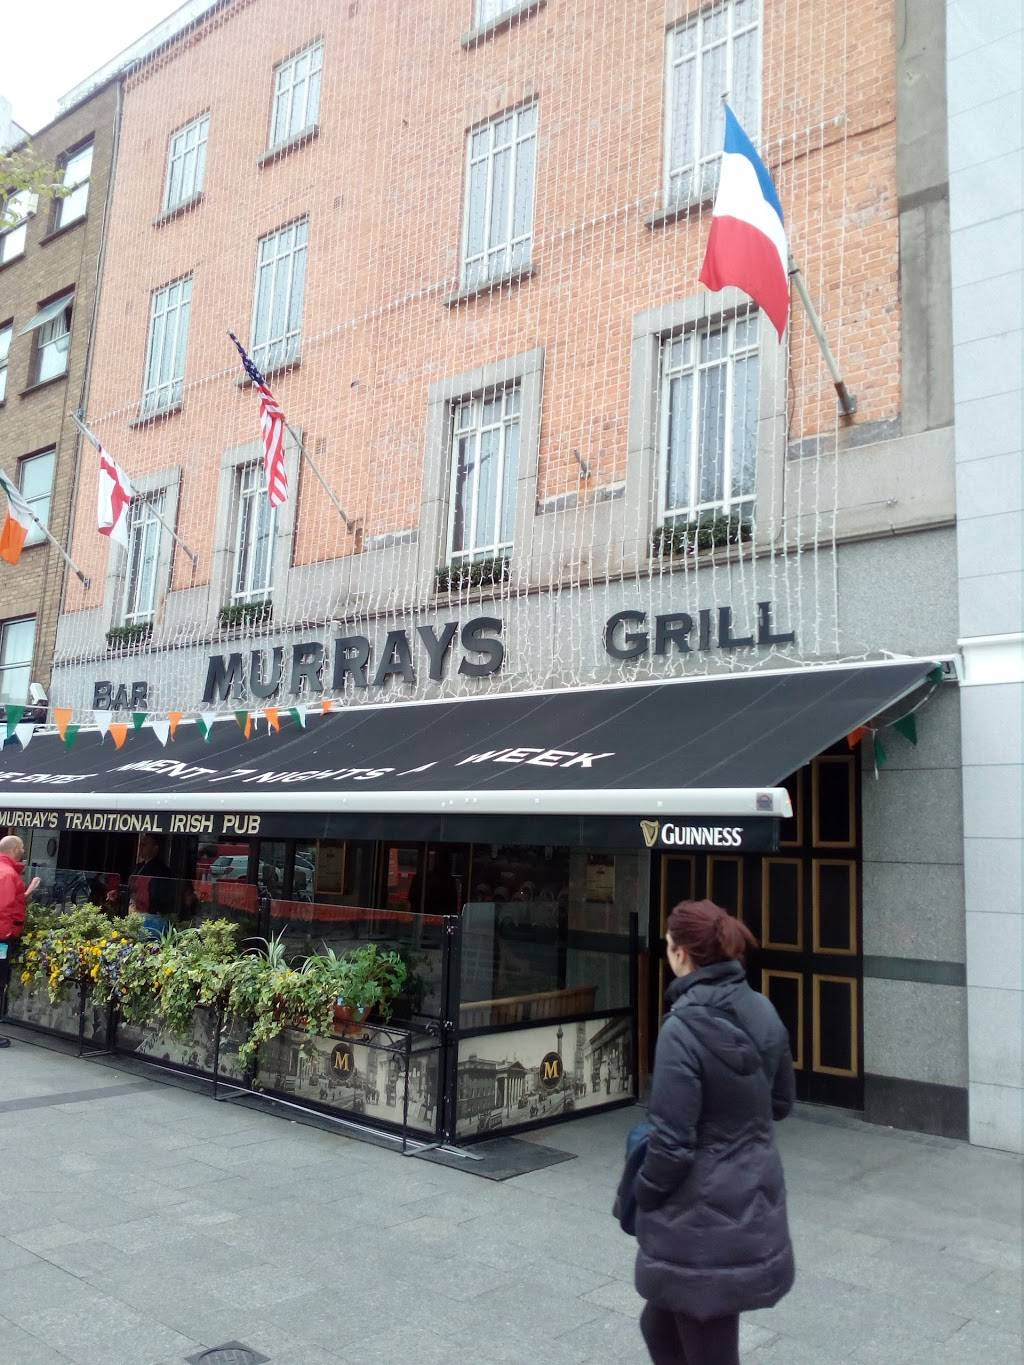 Murrays Bar & Grill | restaurant | 524 E Baltimore Ave, Clifton Heights, PA 19018, USA | 6106235971 OR +1 610-623-5971